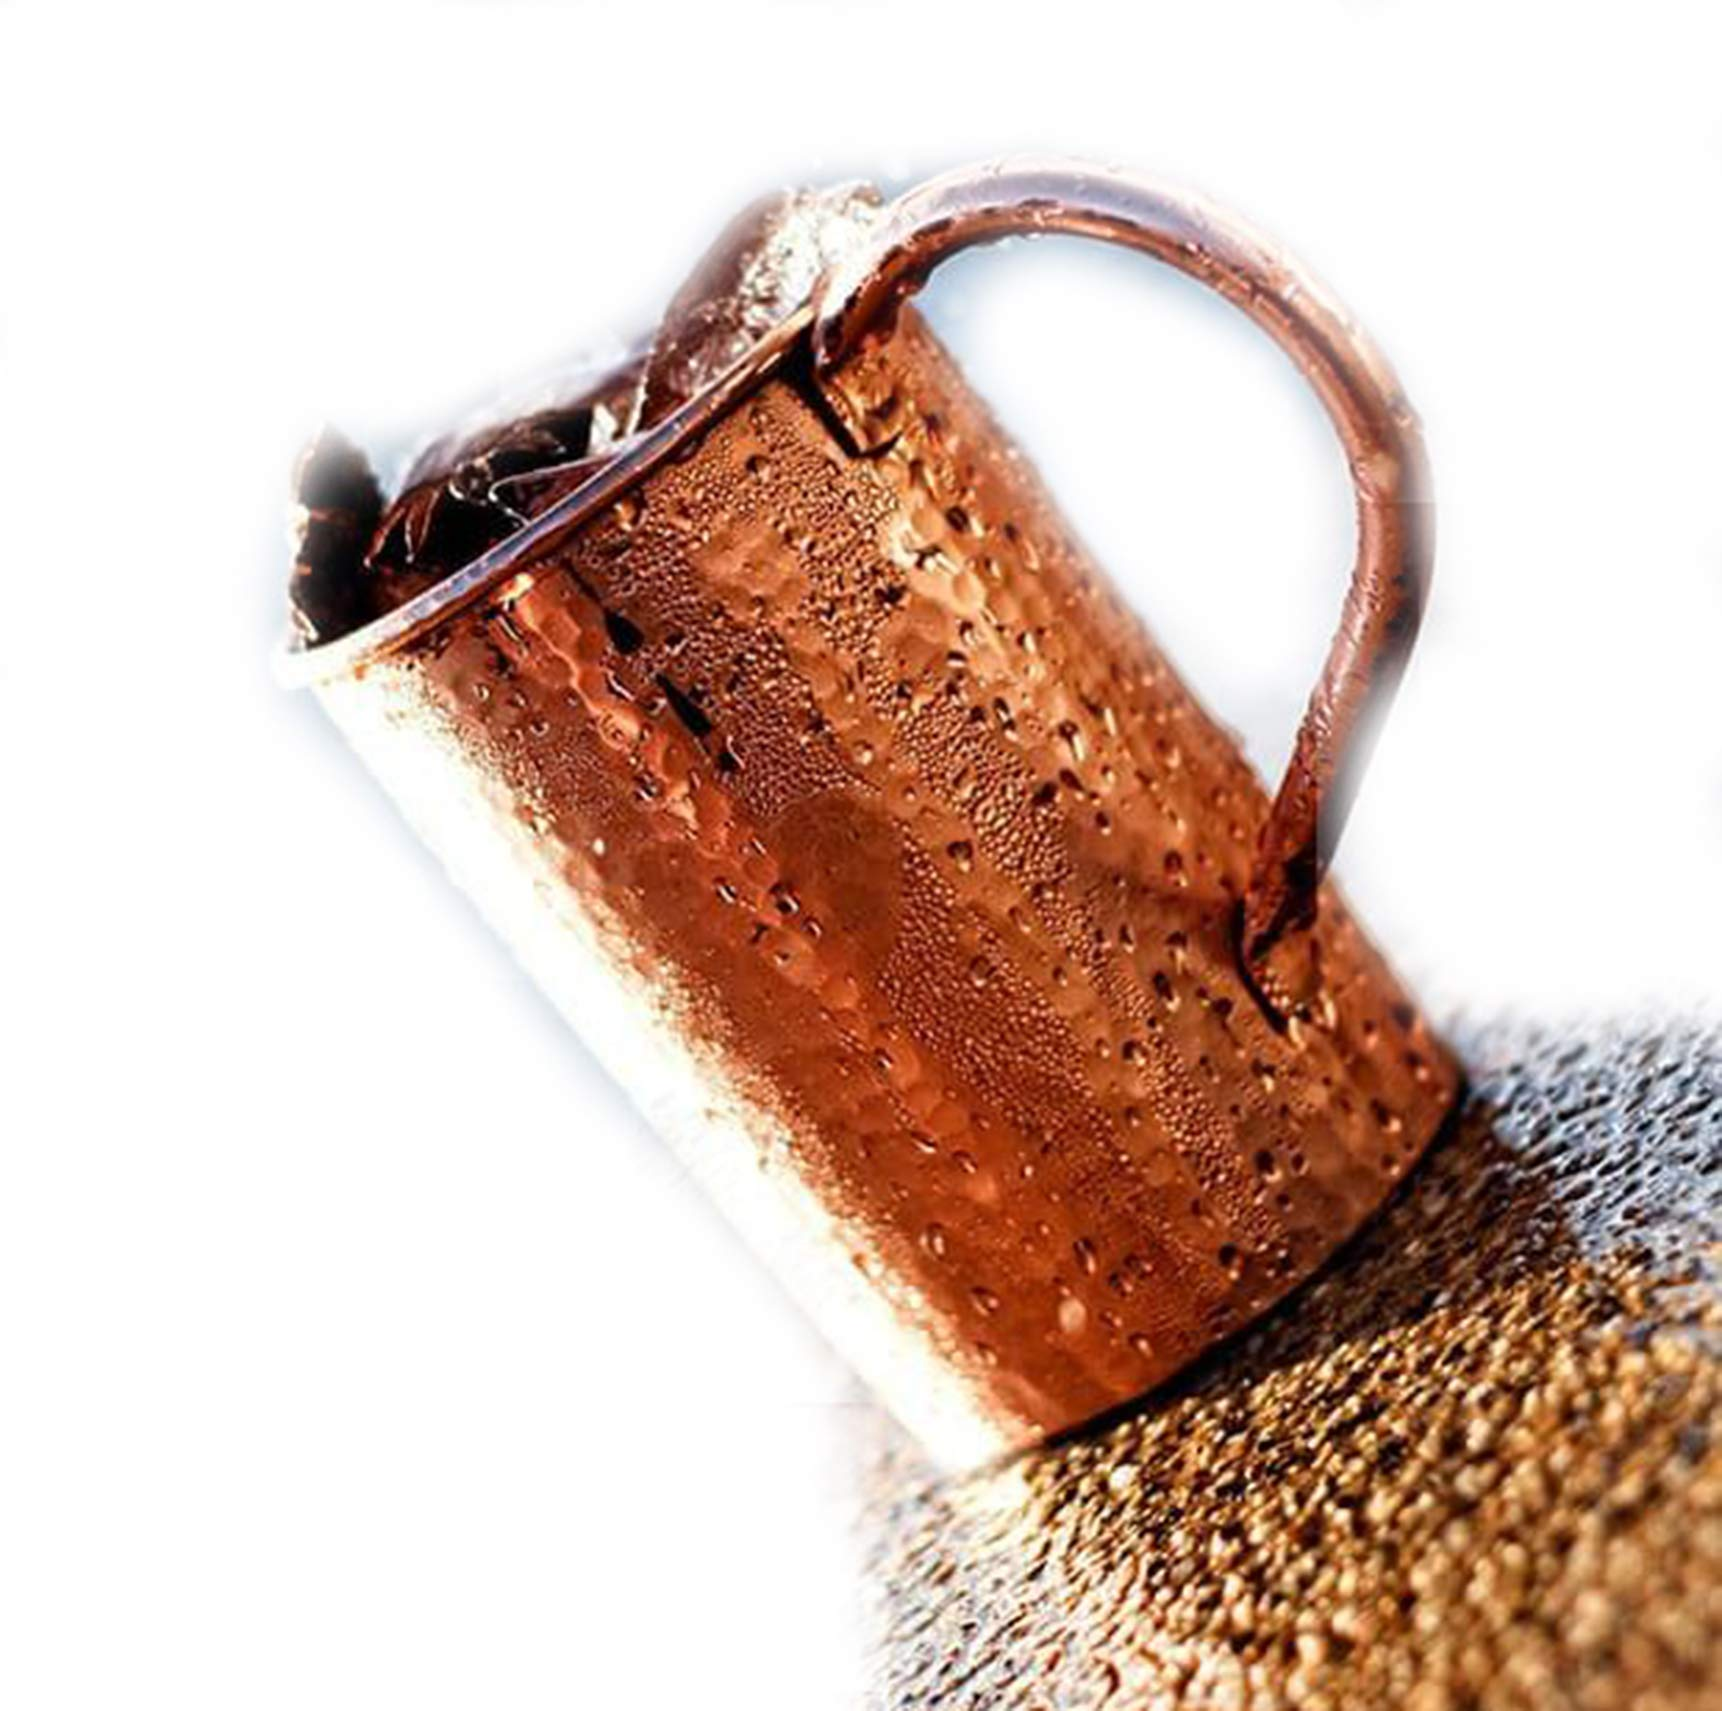 Moscow Mule Copper Mugs - Set of 2-Handcrafted Food Safe Pure Solid Copper Mugs - 16 Ounce Set With Bonus : Highest Quality 2 Cocktail Copper Straws and 1 Shot Glass